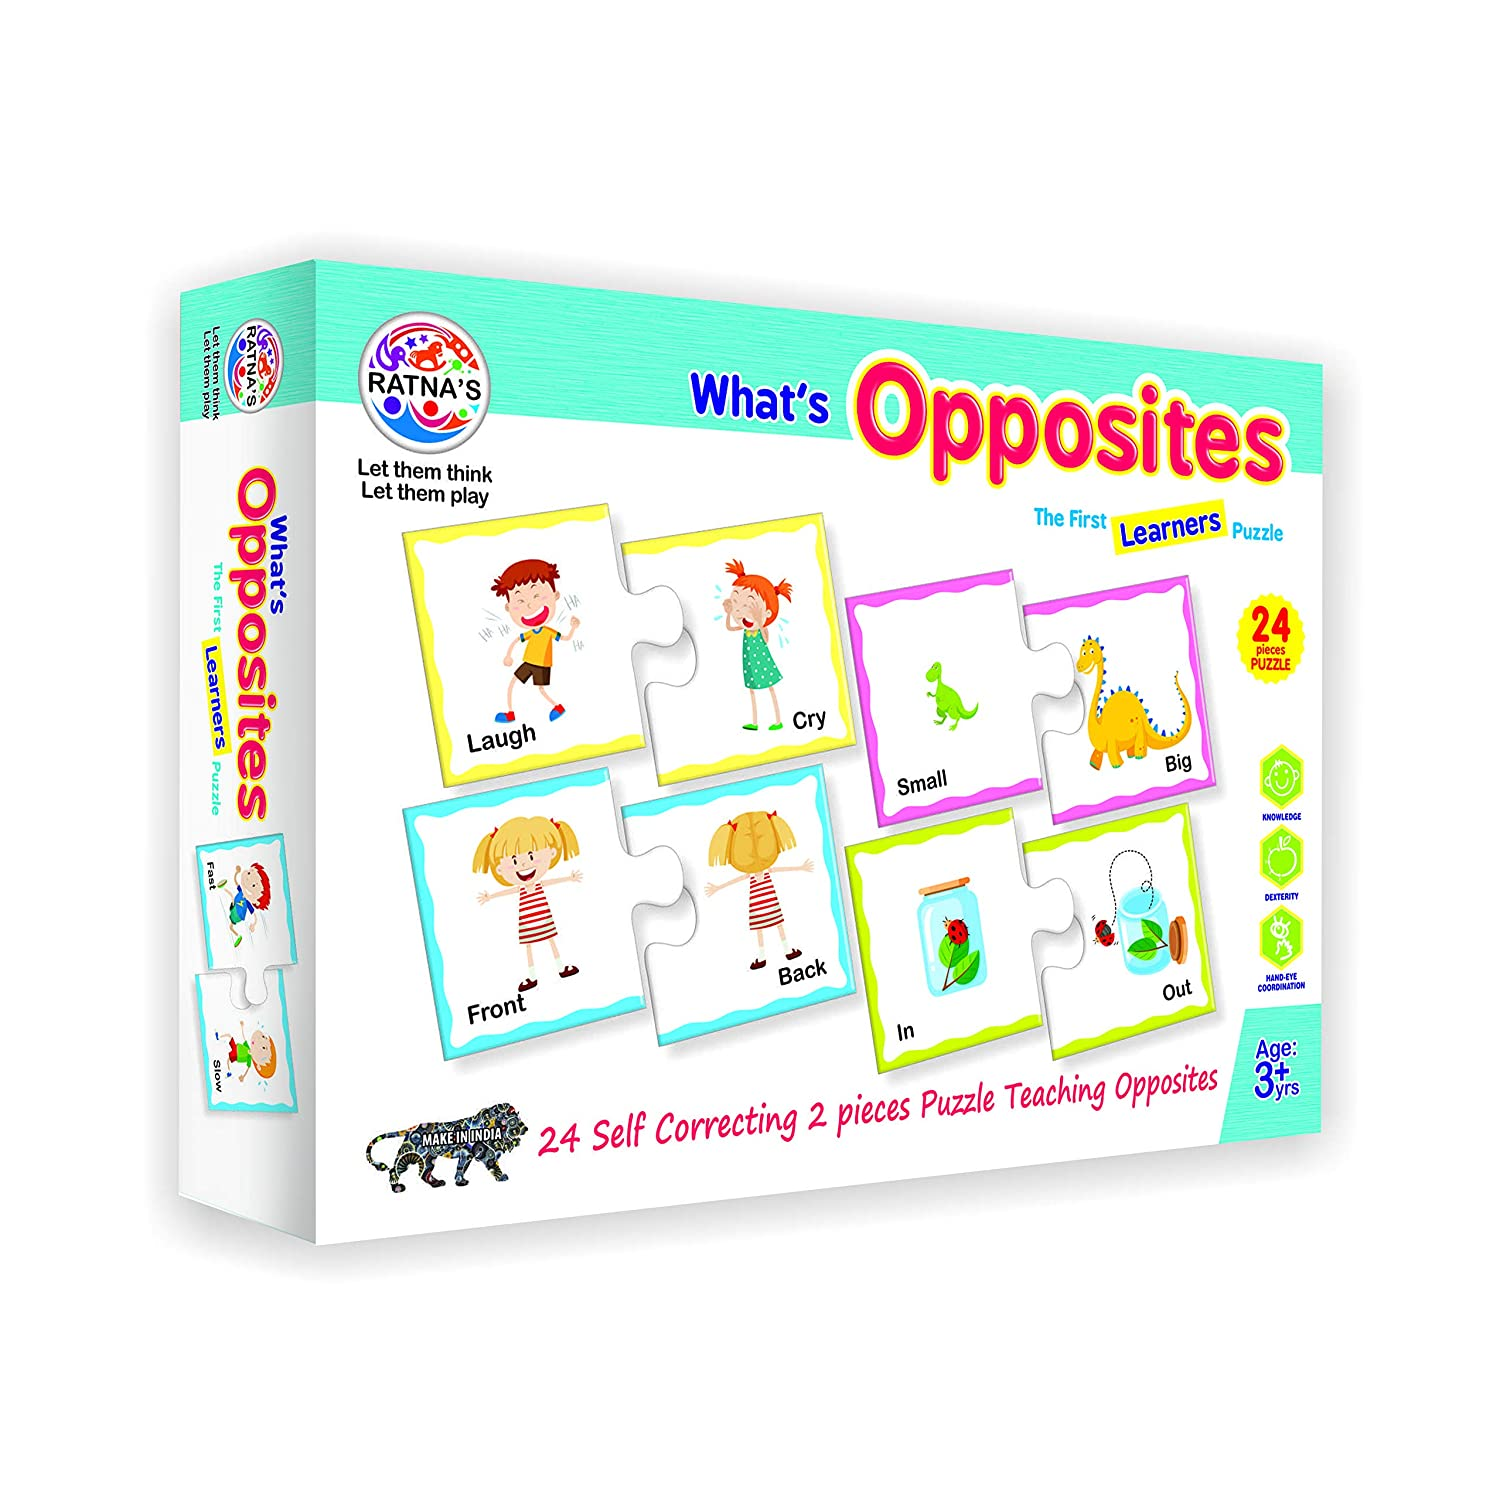 Whats Opposites Jigsaw Puzzle